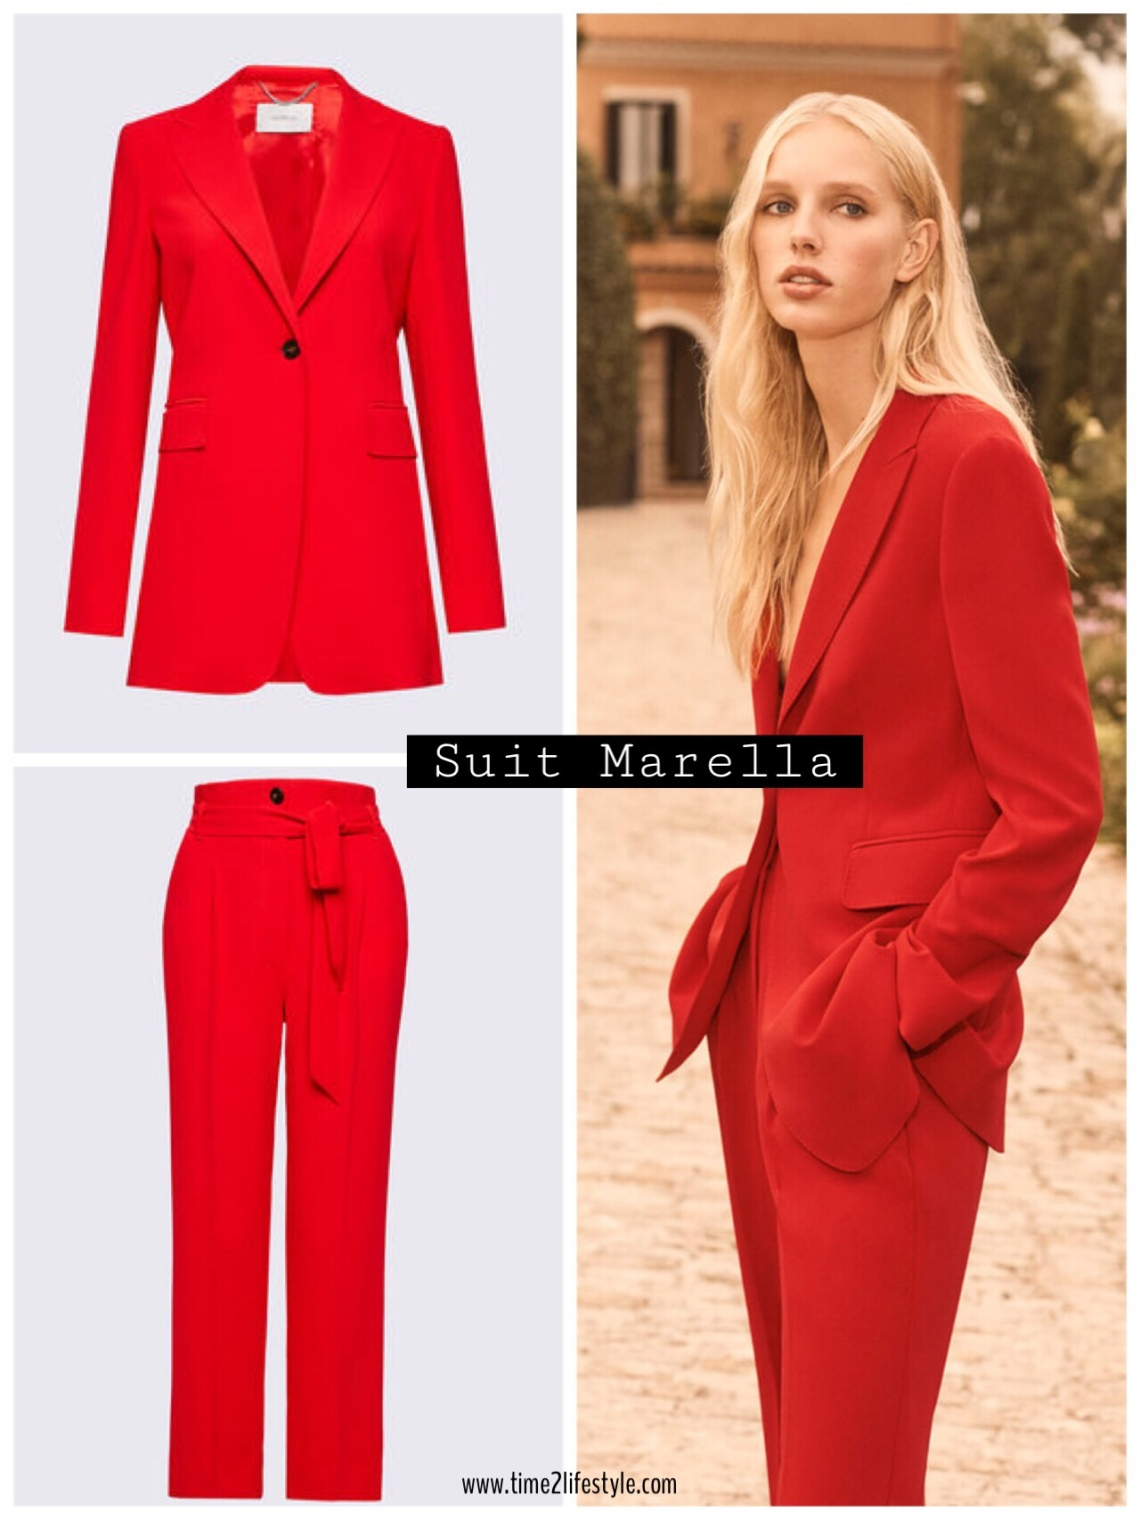 Suit MARELLA P/E 2019 https://time2lifestyle.com/